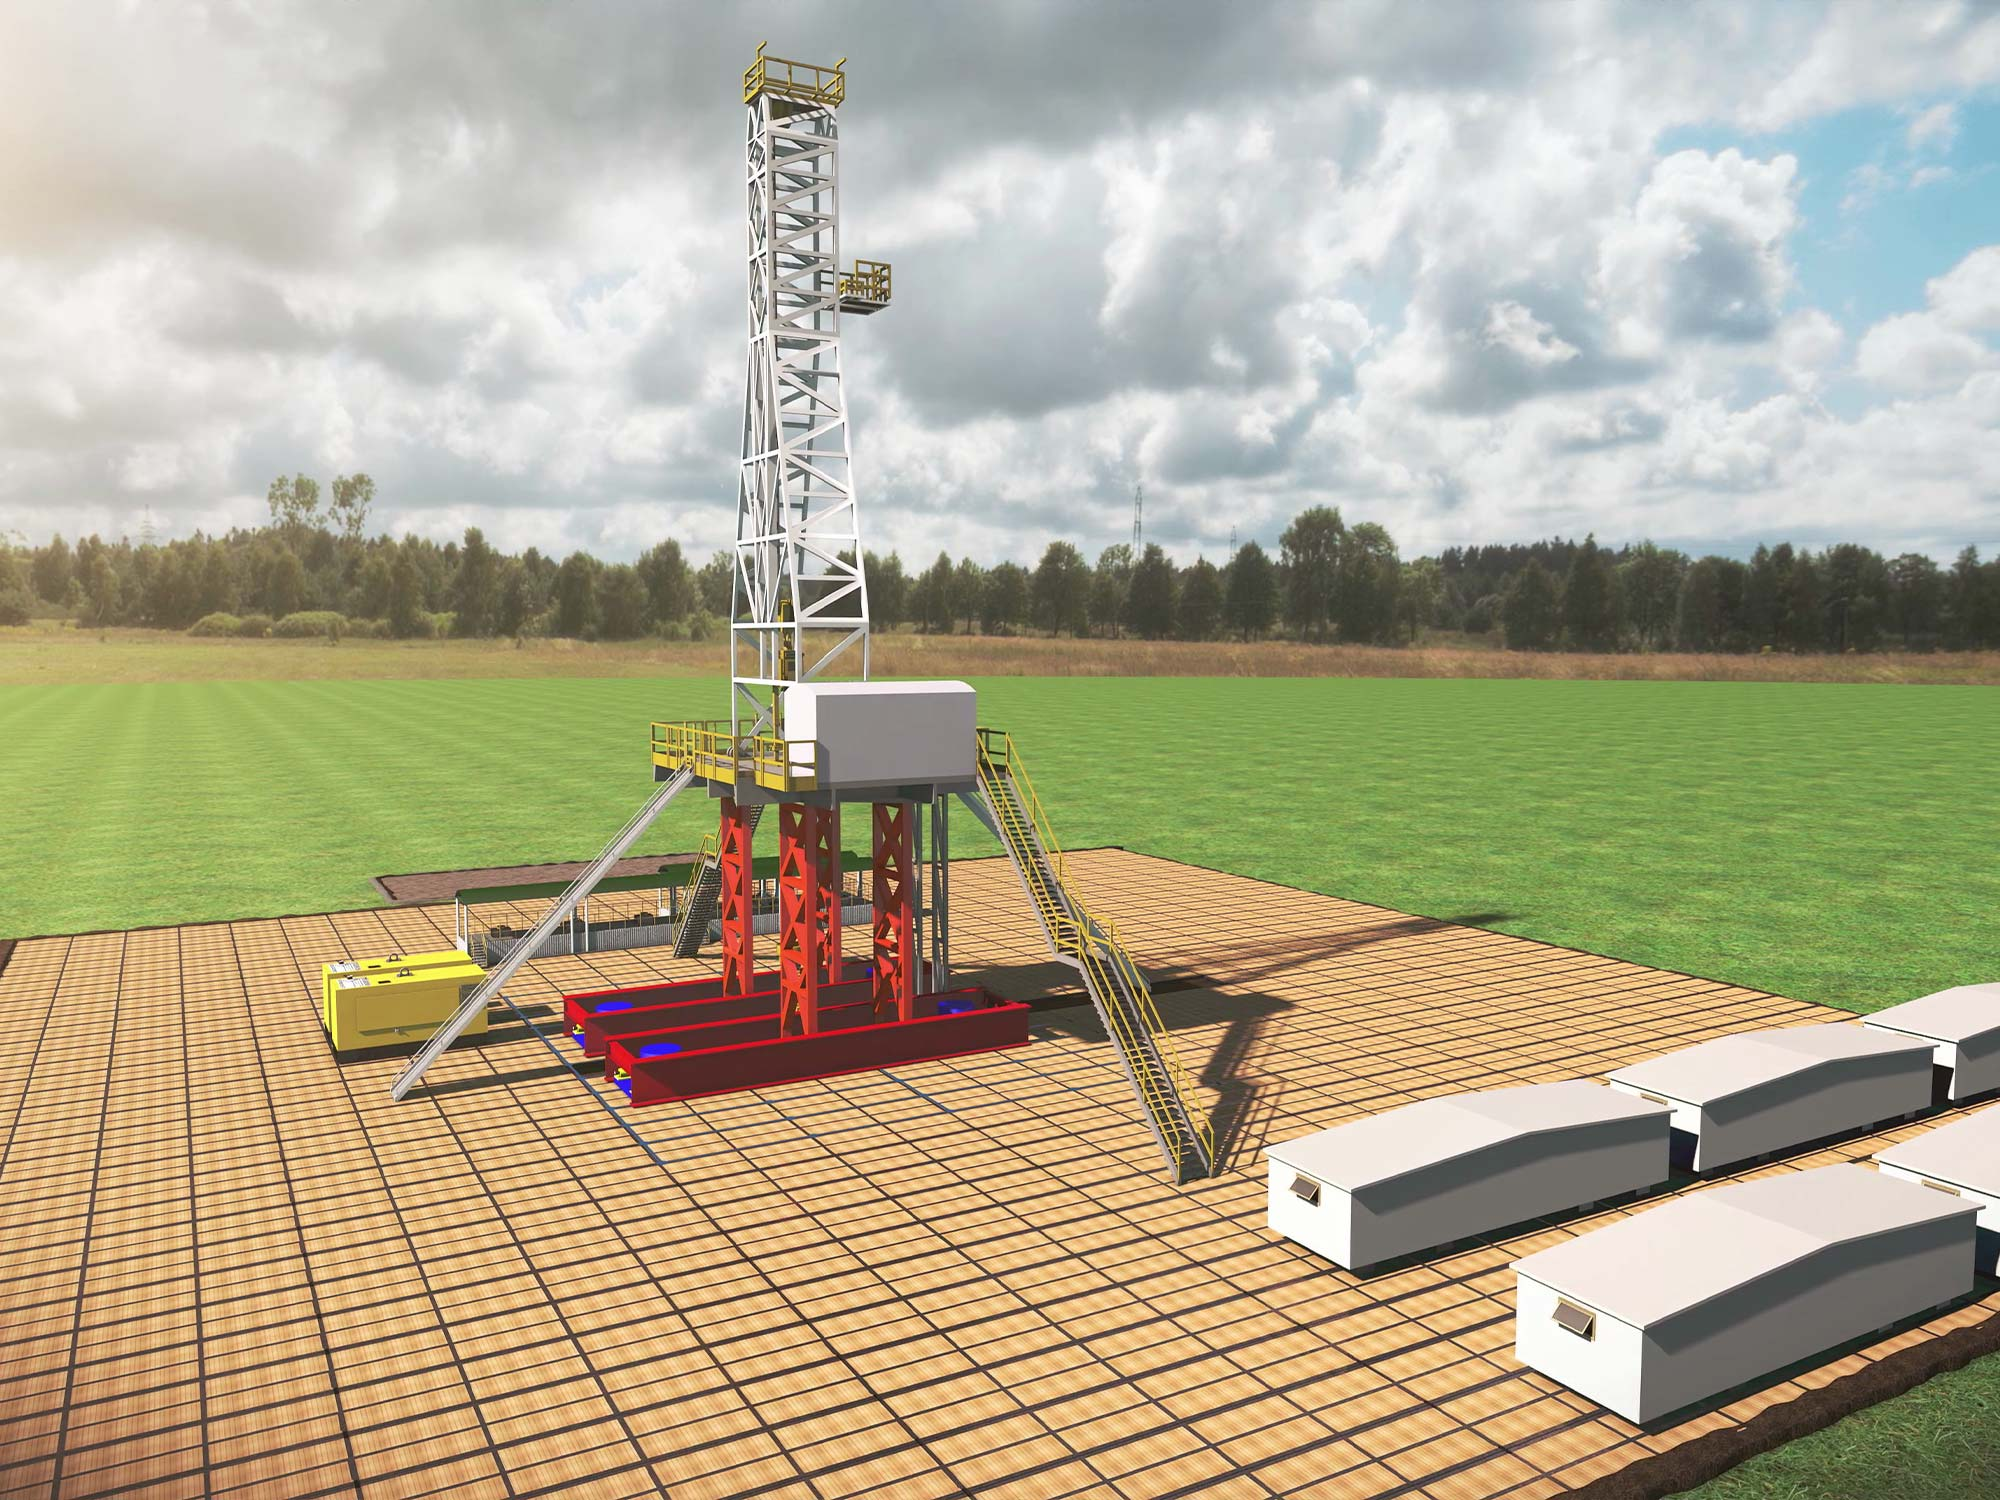 Rendering of the TorcSill Onshore Platform supported by helical piles at a drill location